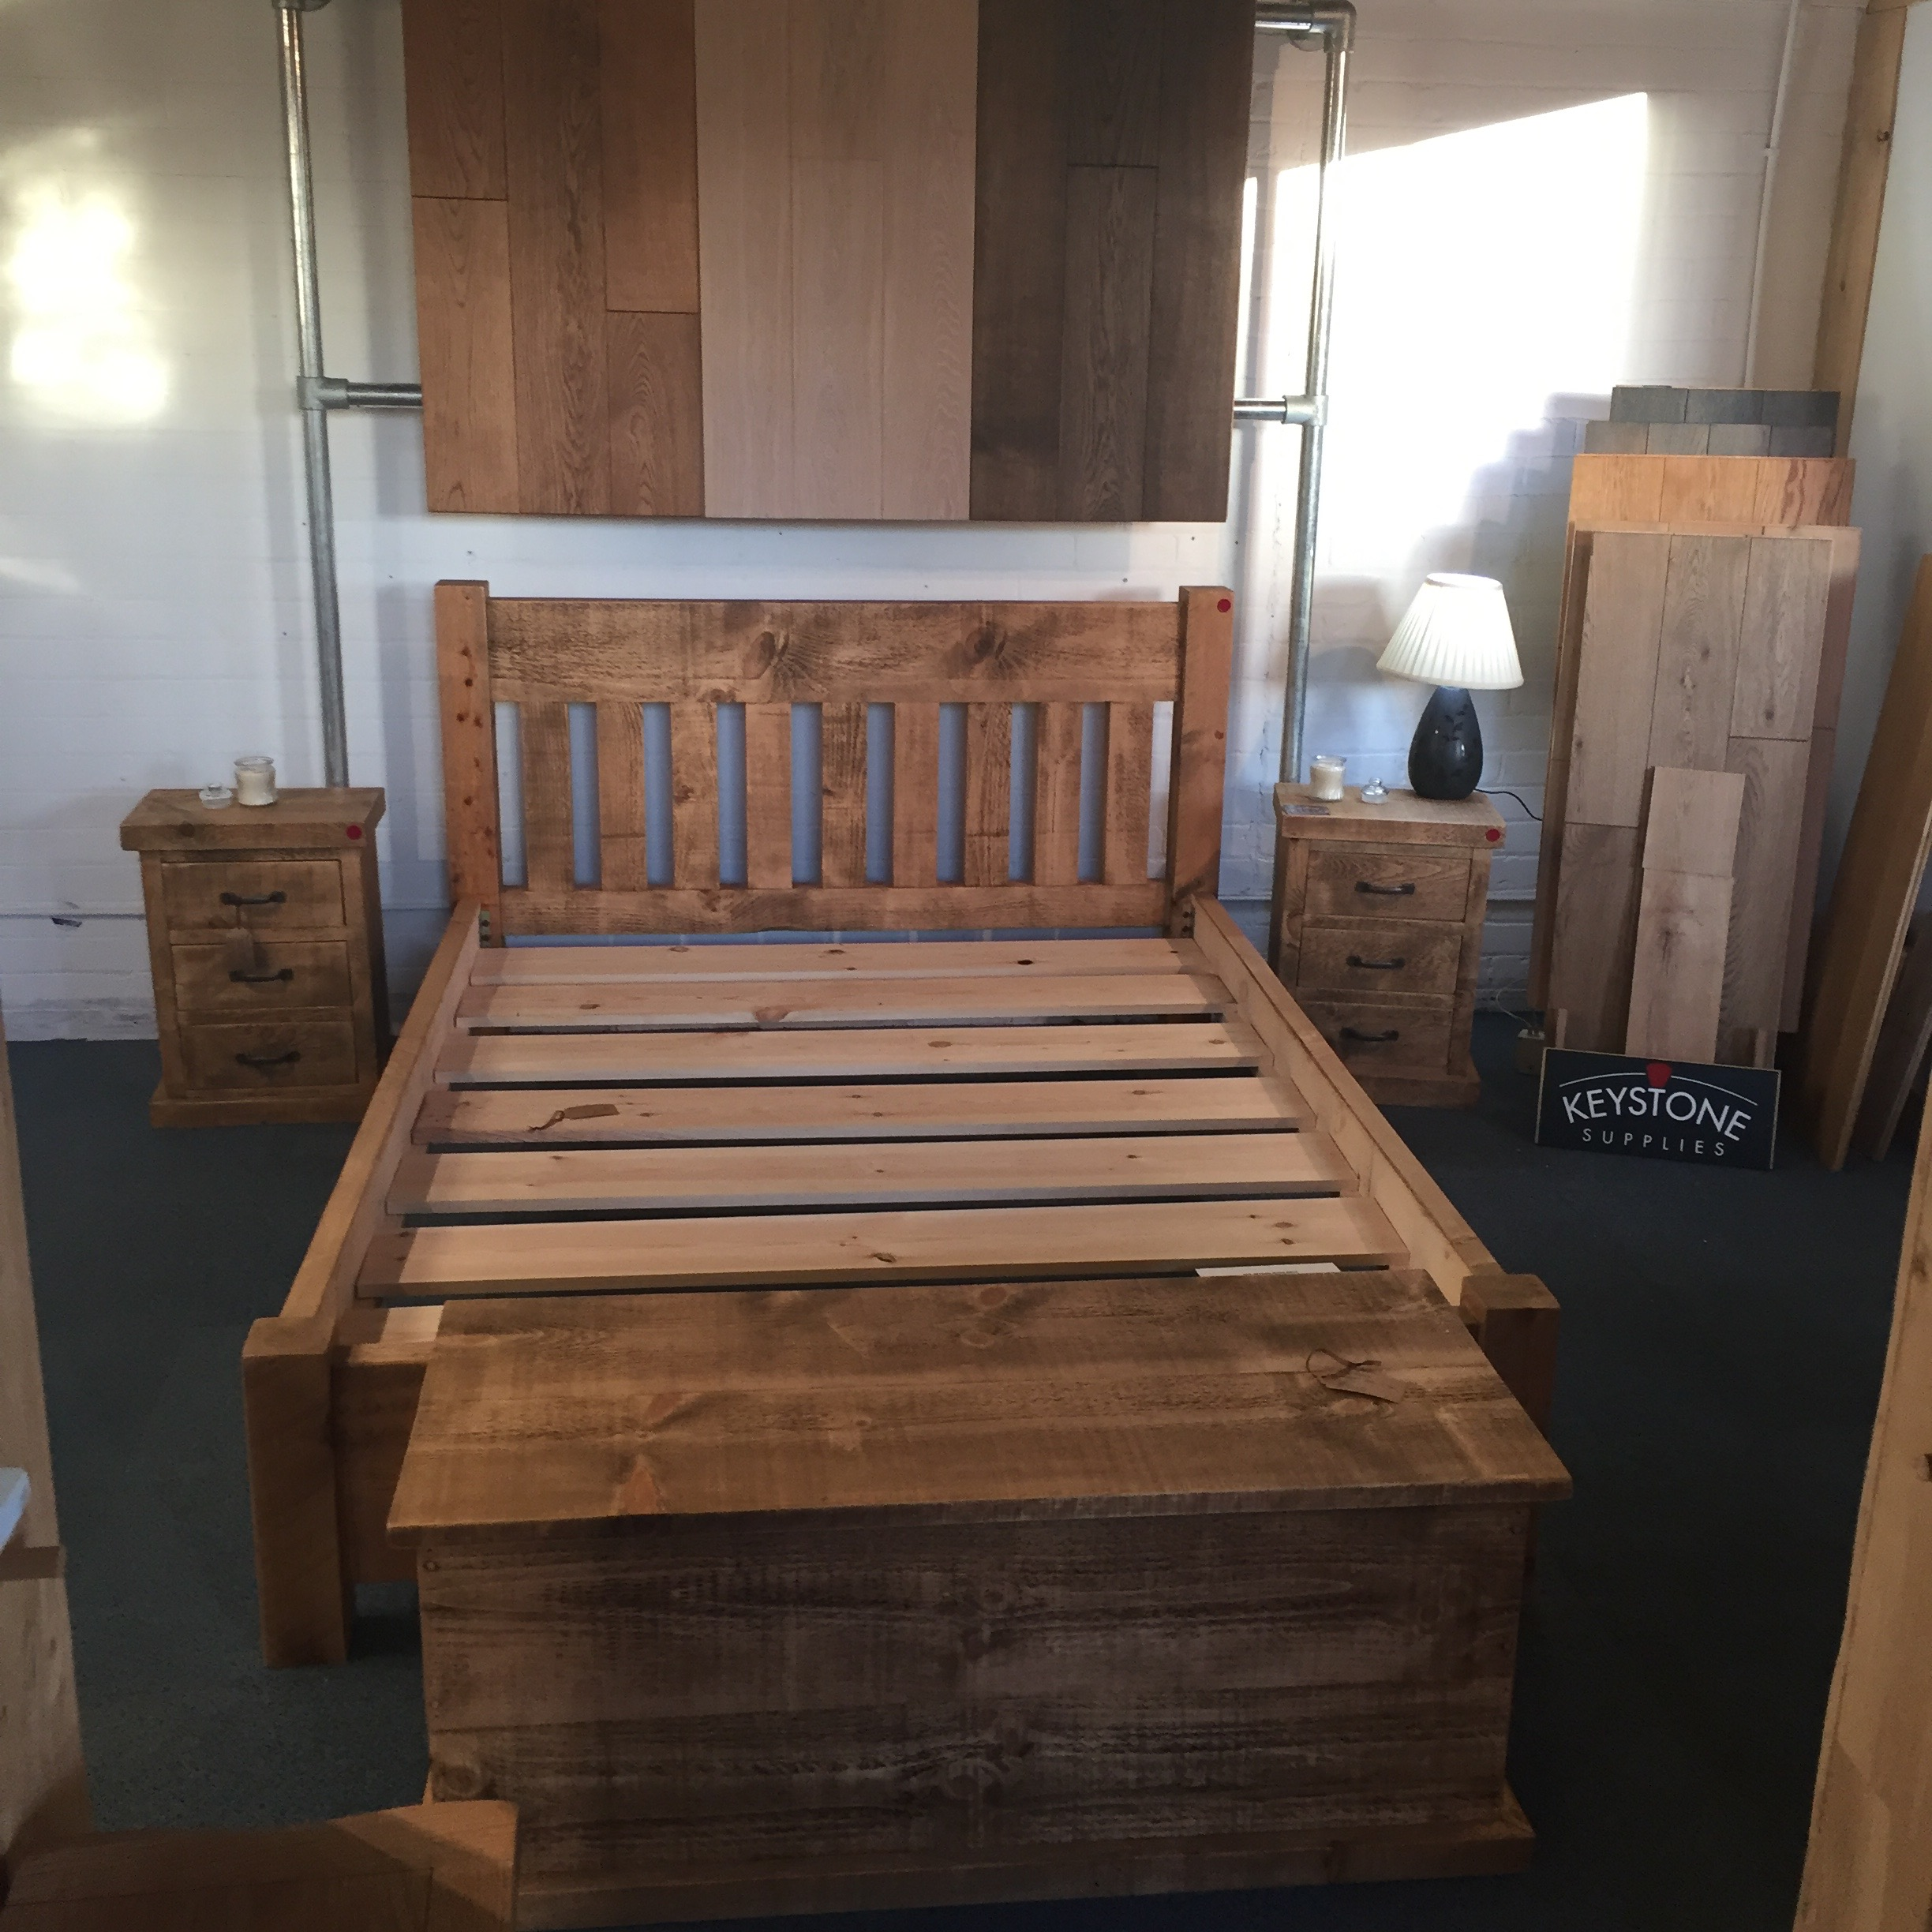 Handmade bed, low footboard